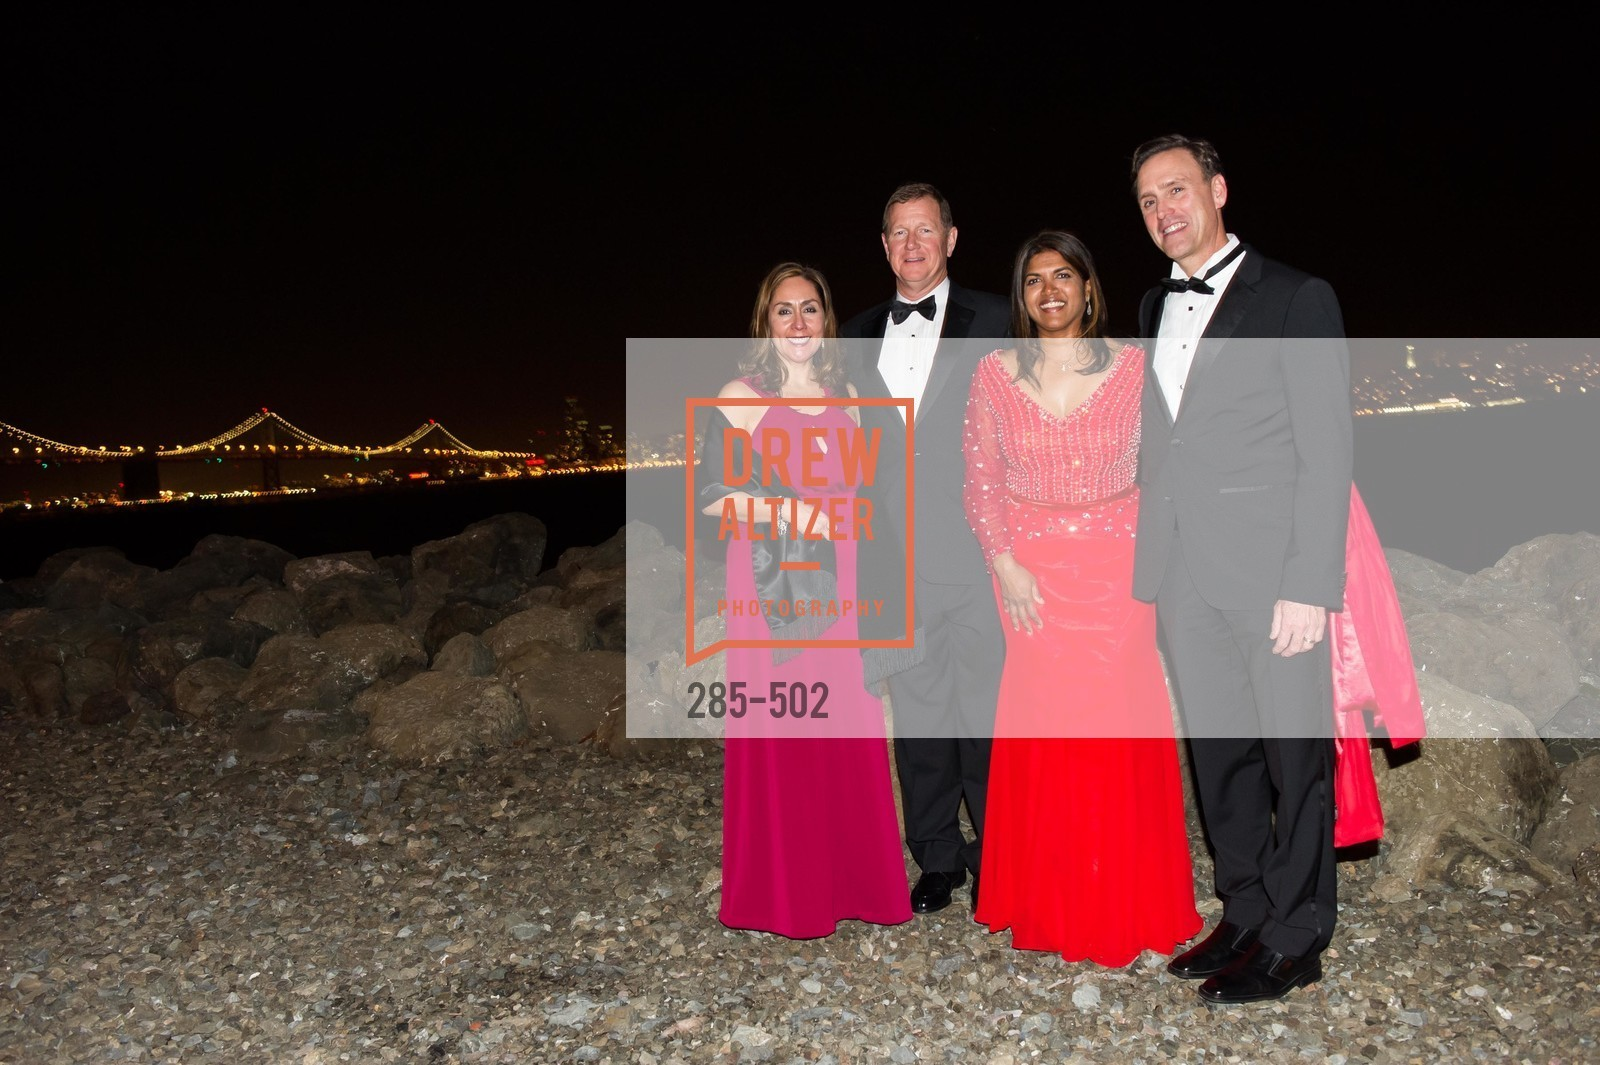 Naomi Chavez Peters, Christopher Peters, Manjula Noone, Patrick Noone, 2014 RED CROSS Gala Honoring Paula Downey as the American Red Cross Bay Area Chapter Humanitarian CEO of the Year, US. Treasure Island (The Great Lawn), April 5th, 2014,Drew Altizer, Drew Altizer Photography, full-service agency, private events, San Francisco photographer, photographer california